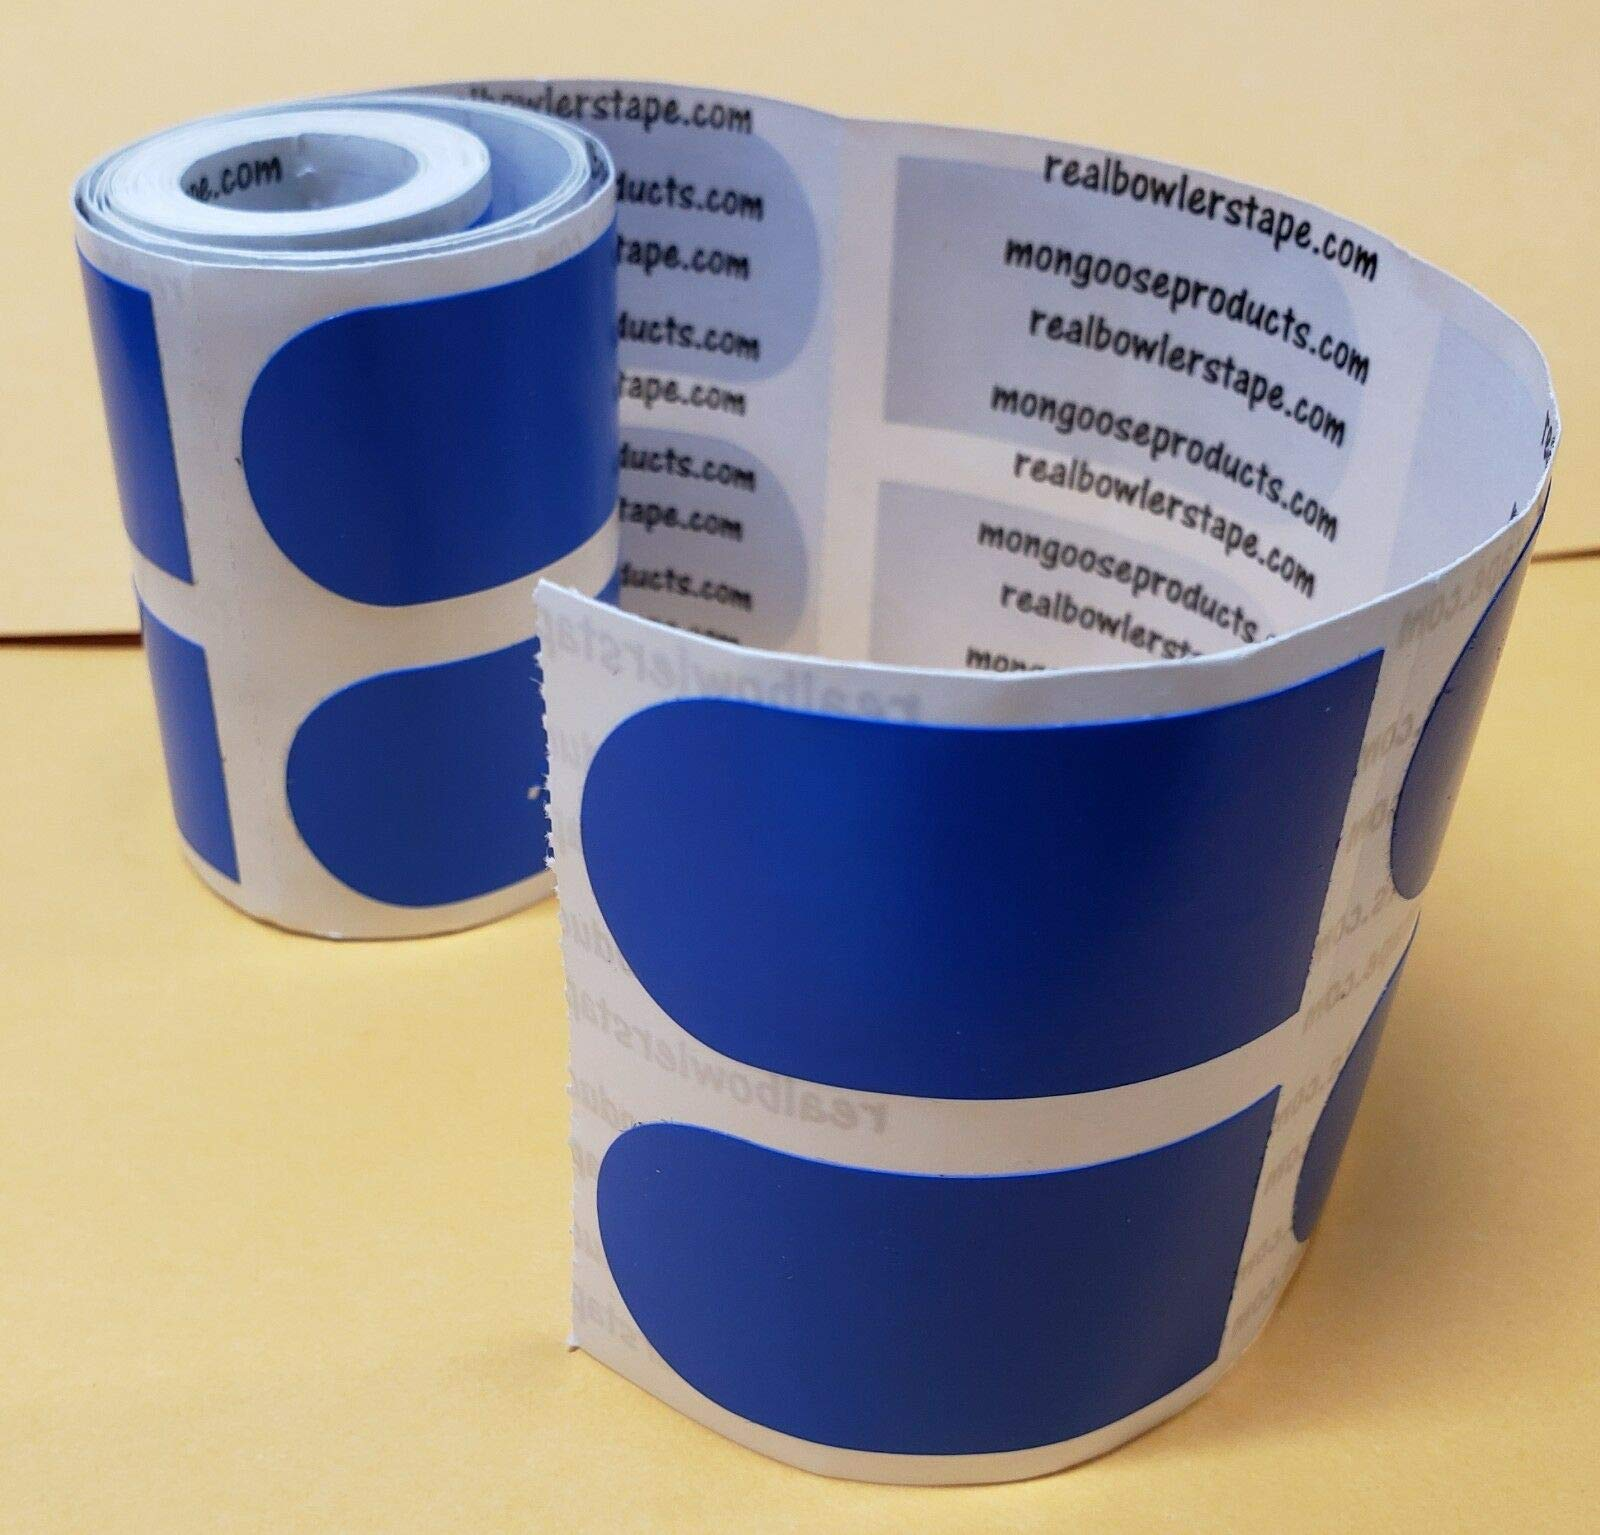 Real Bowler's Tape, Roll of 100, 1 inch Blue/Smooth by Generic